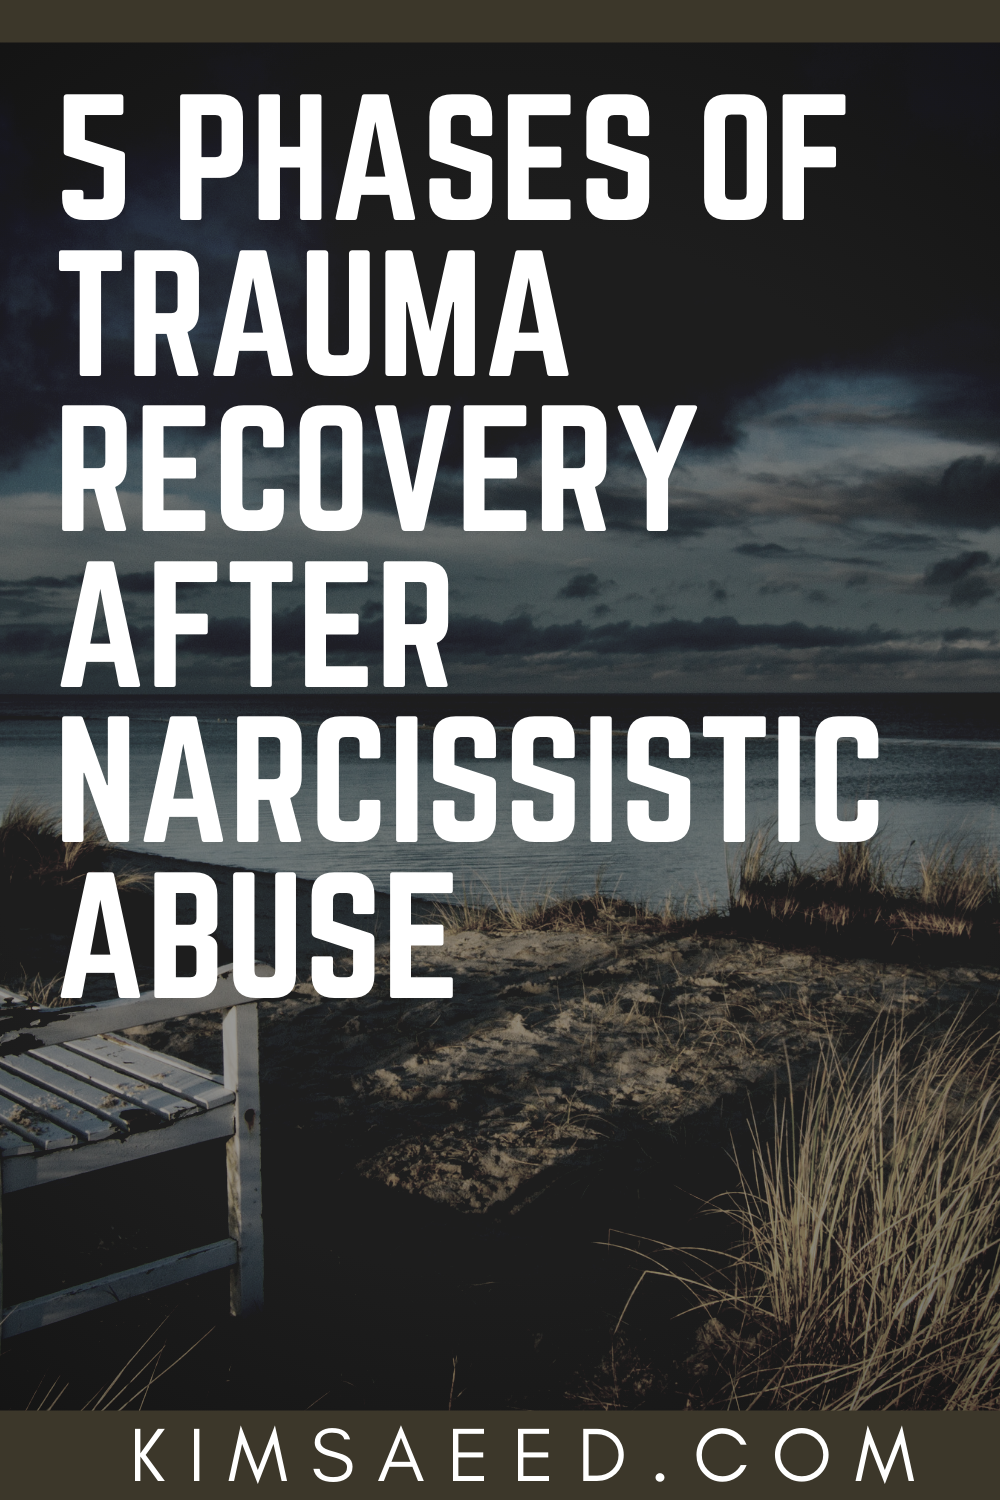 Working The 5 Phases of Trauma Recovery After Narcissistic Abuse - Kim Saeed: Narcissistic Abuse Rec